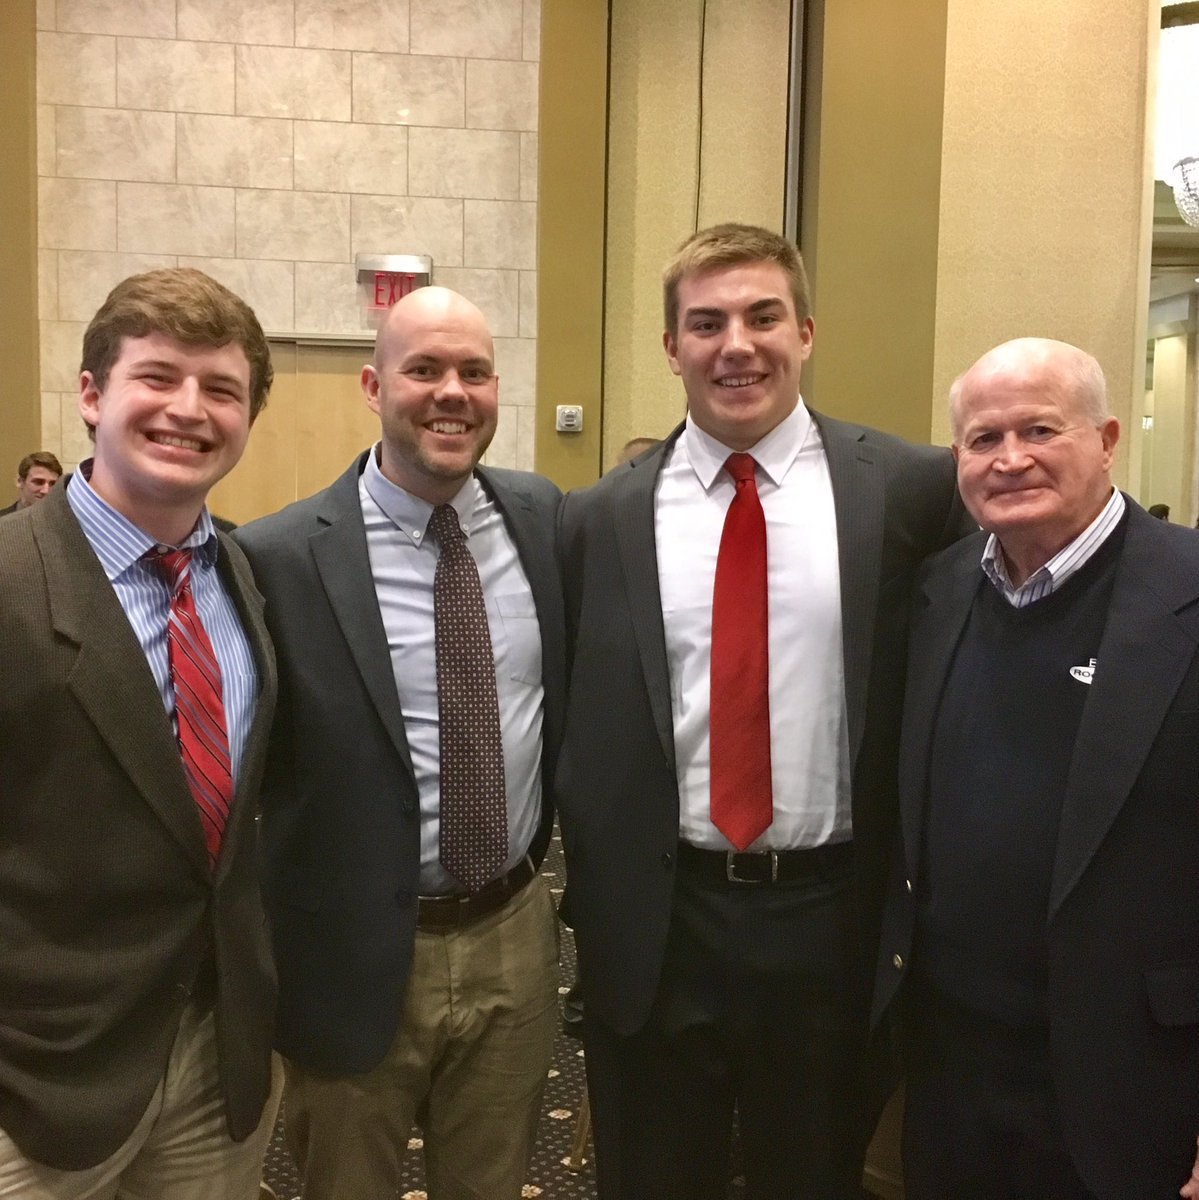 Great night at the NFF Scholar Athlete Awards. Congrats @medgerly73 and @carterwhite00 https://t.co/HkruIuPbXy